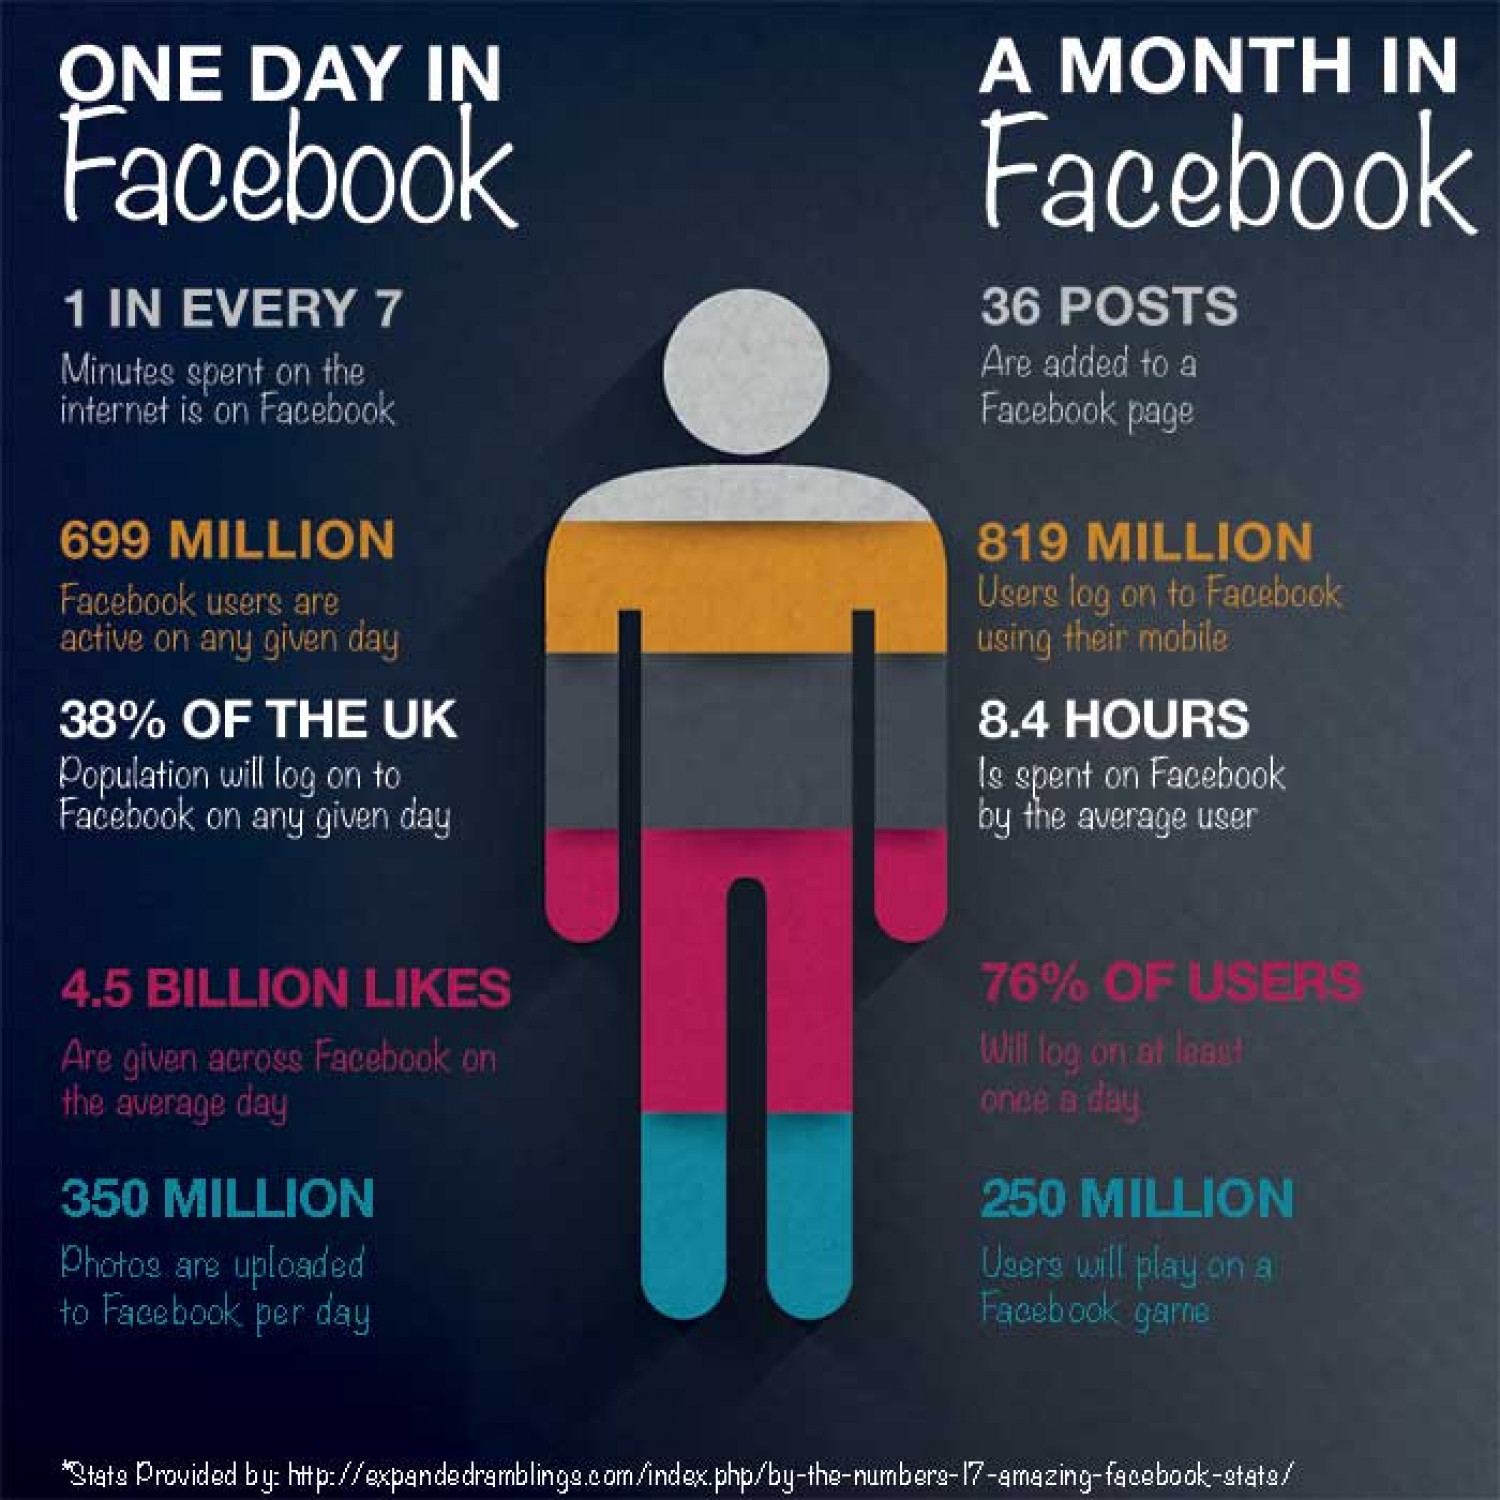 Facebook - One day and One month Infographic